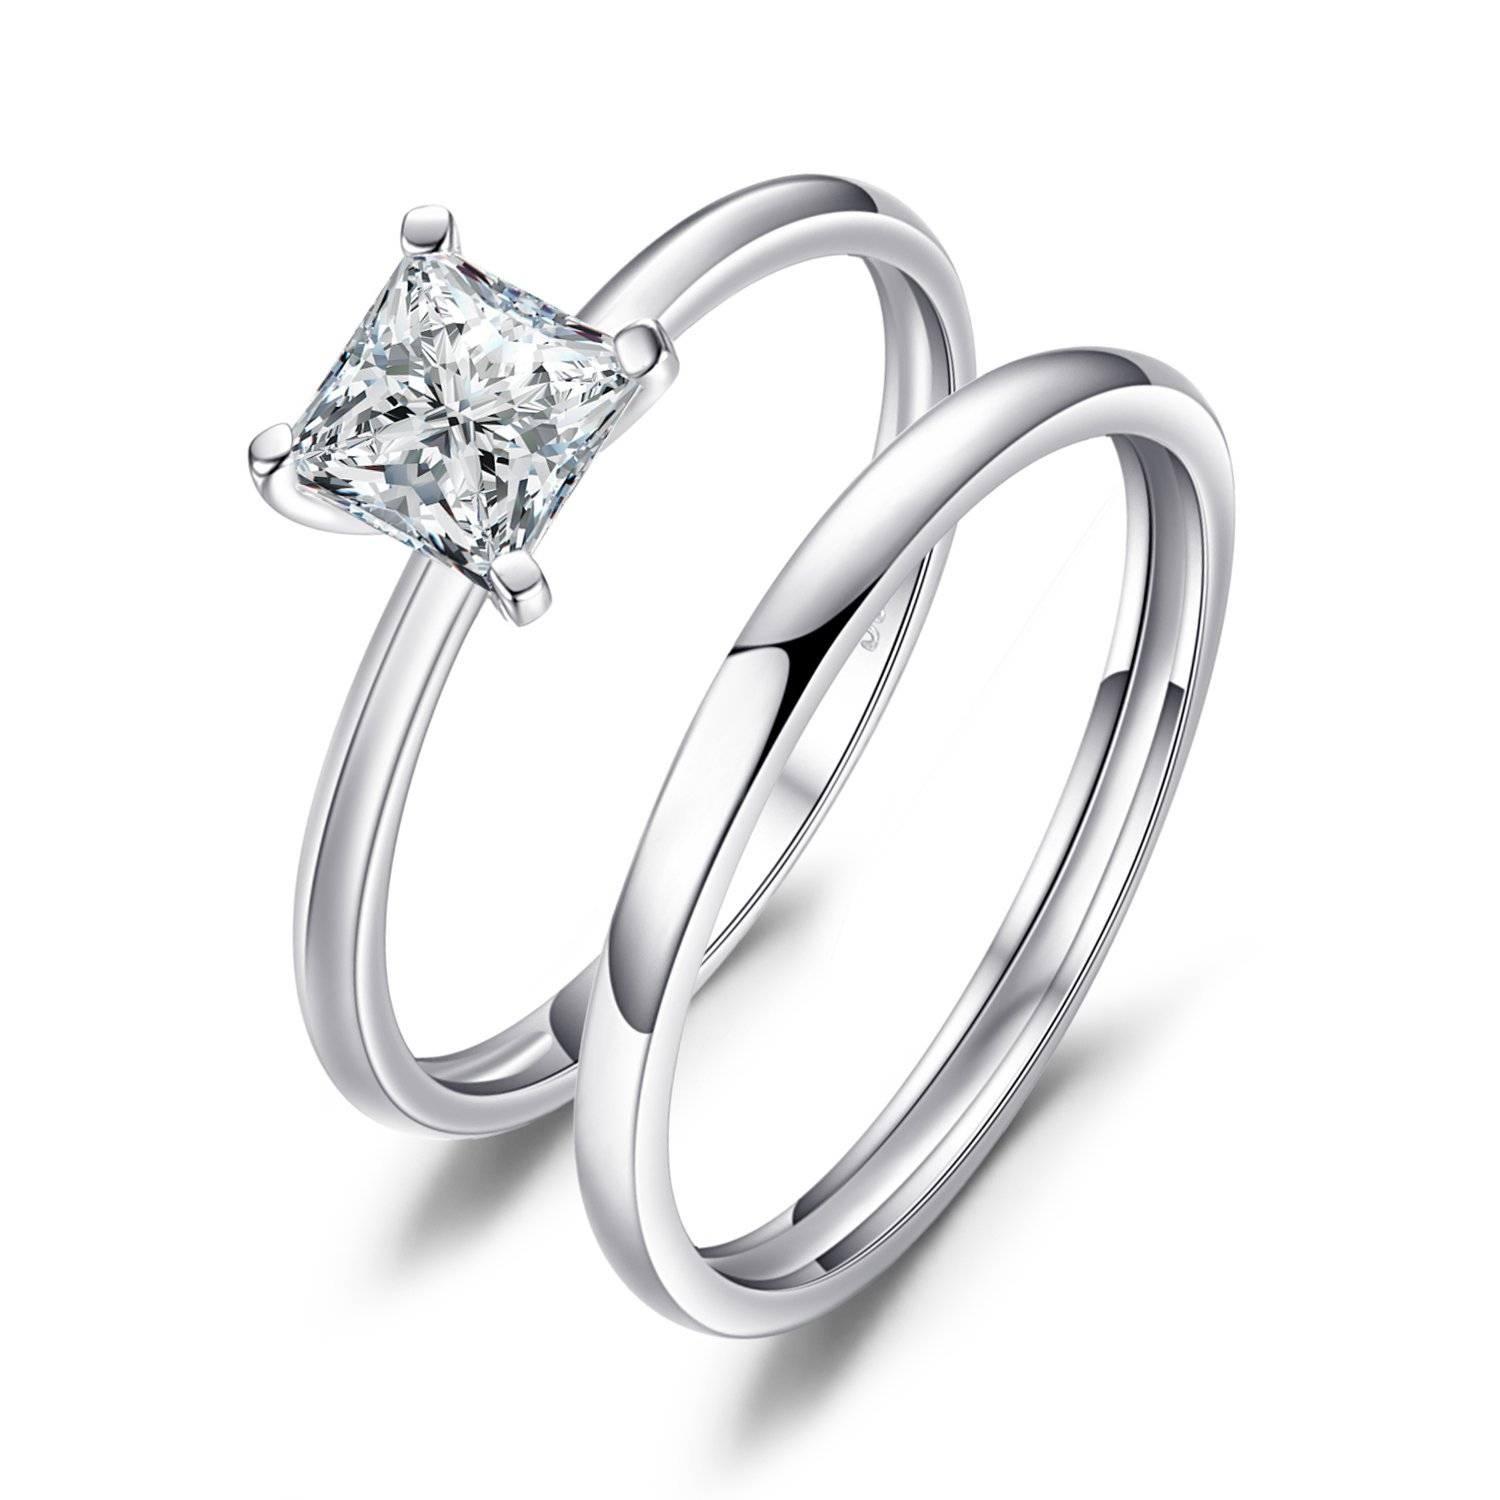 JewelryPalace Wedding Rings Wedding Bands Solitaire